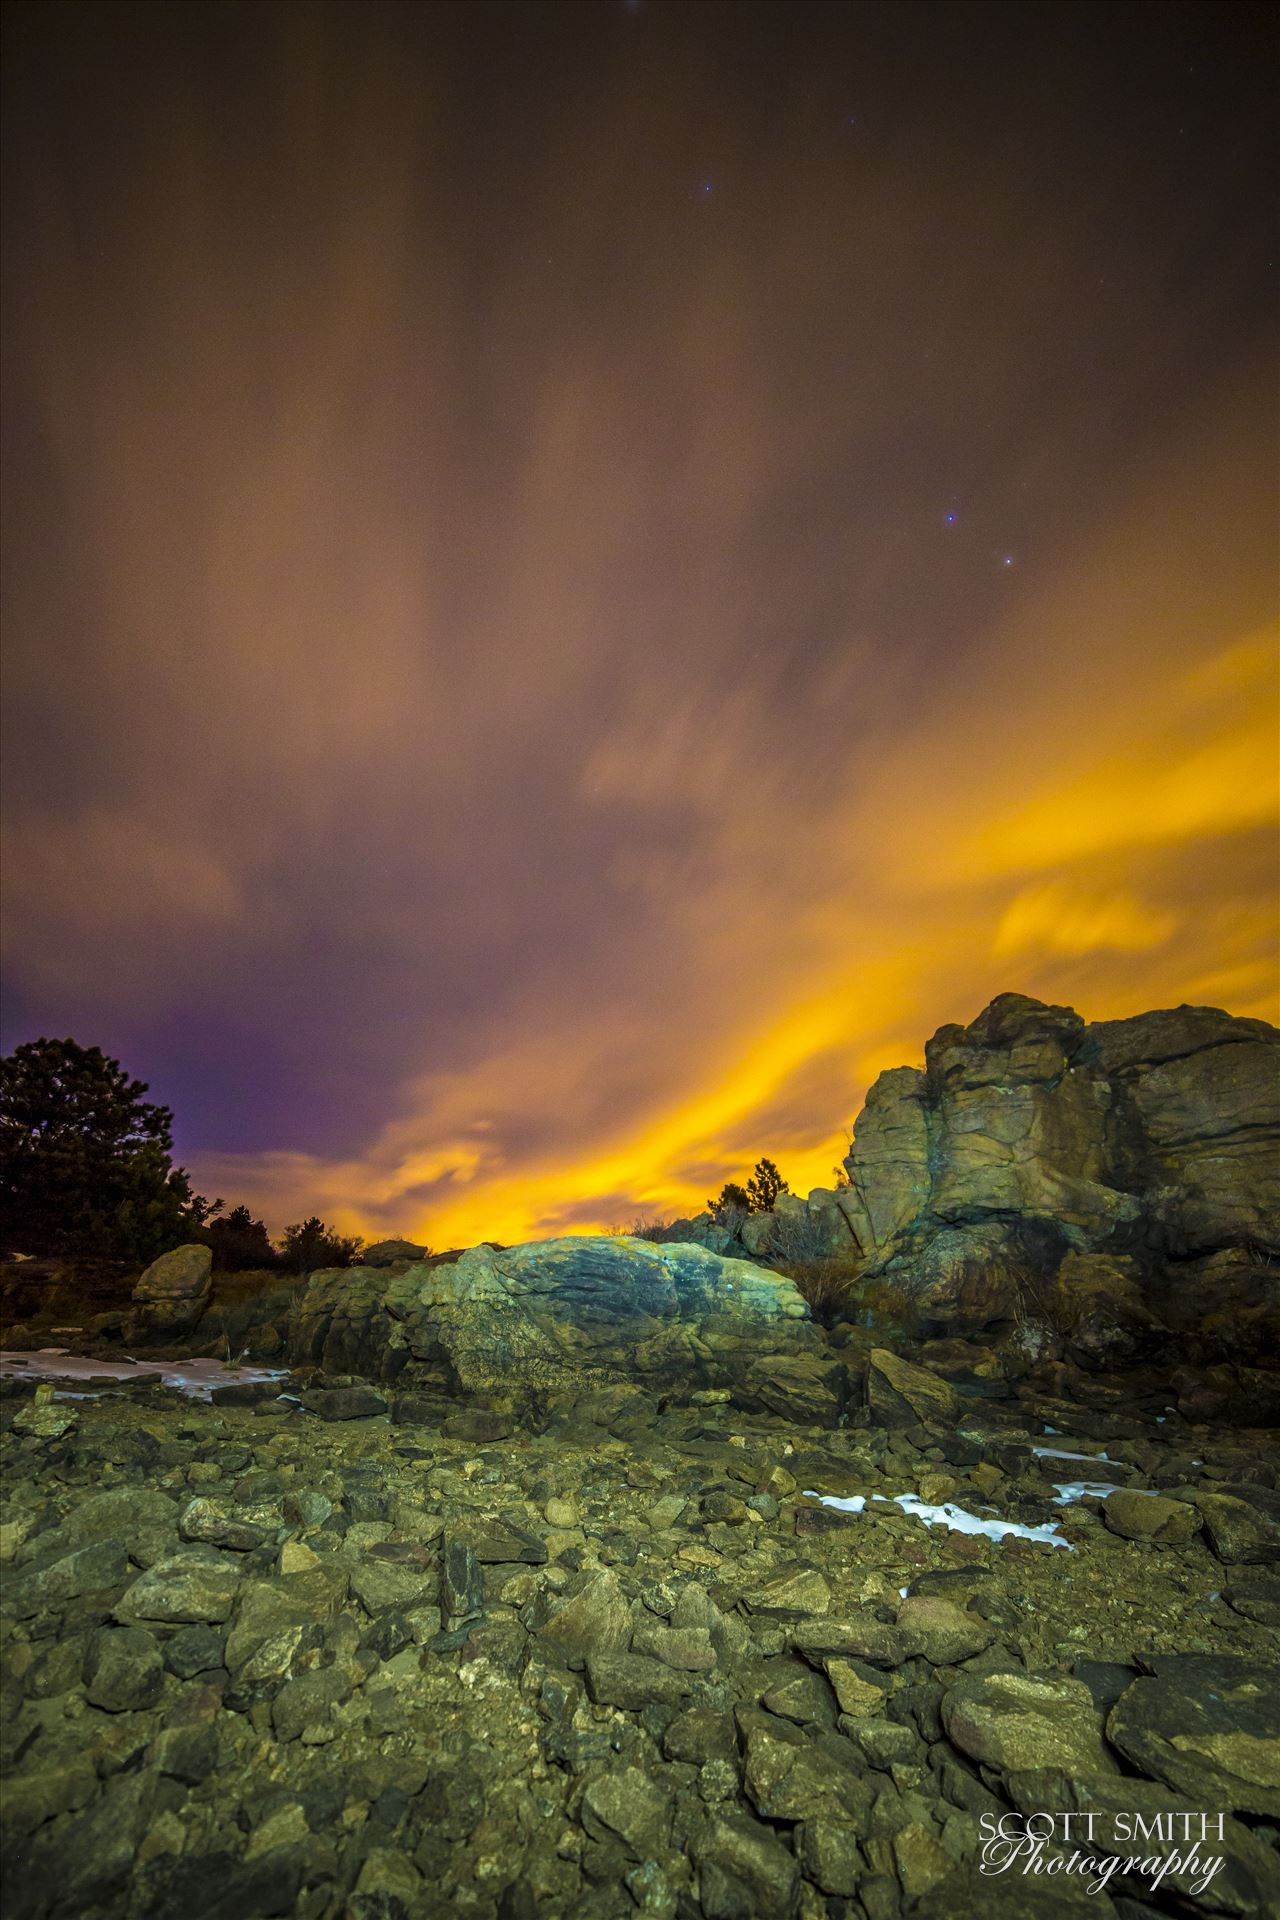 Night Sky on Fire at Mary's Lake - Clouds lit from distant Boulder and Denver light the sky at midnight.  From the shore of Mary's Lake a few miles near Estes Park, looking east towards Denver. by D Scott Smith